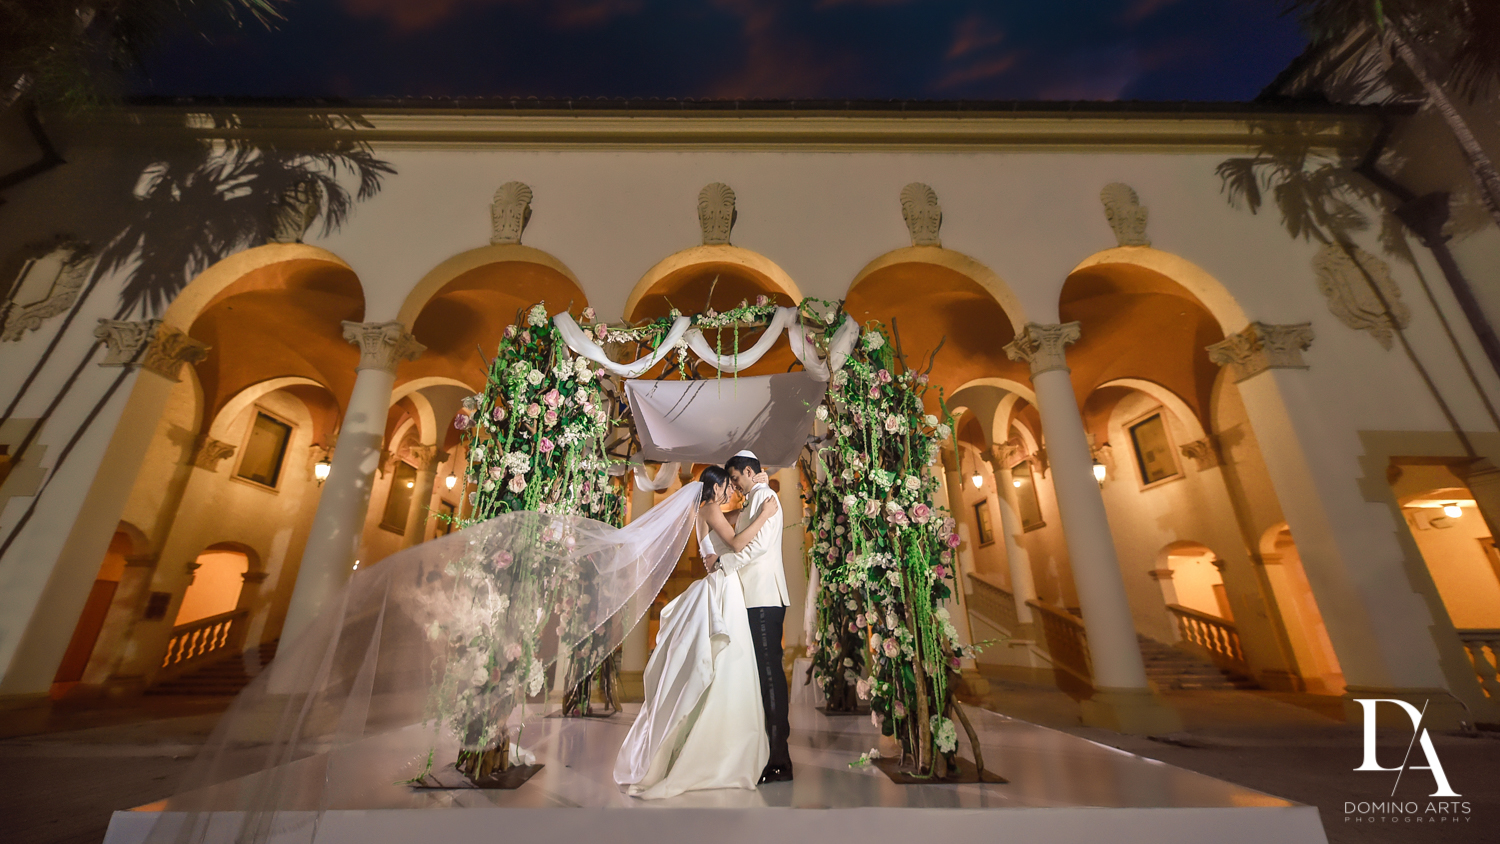 portraits at Modern Luxury Jewish Wedding Photography at Biltmore Miami Coral Gables